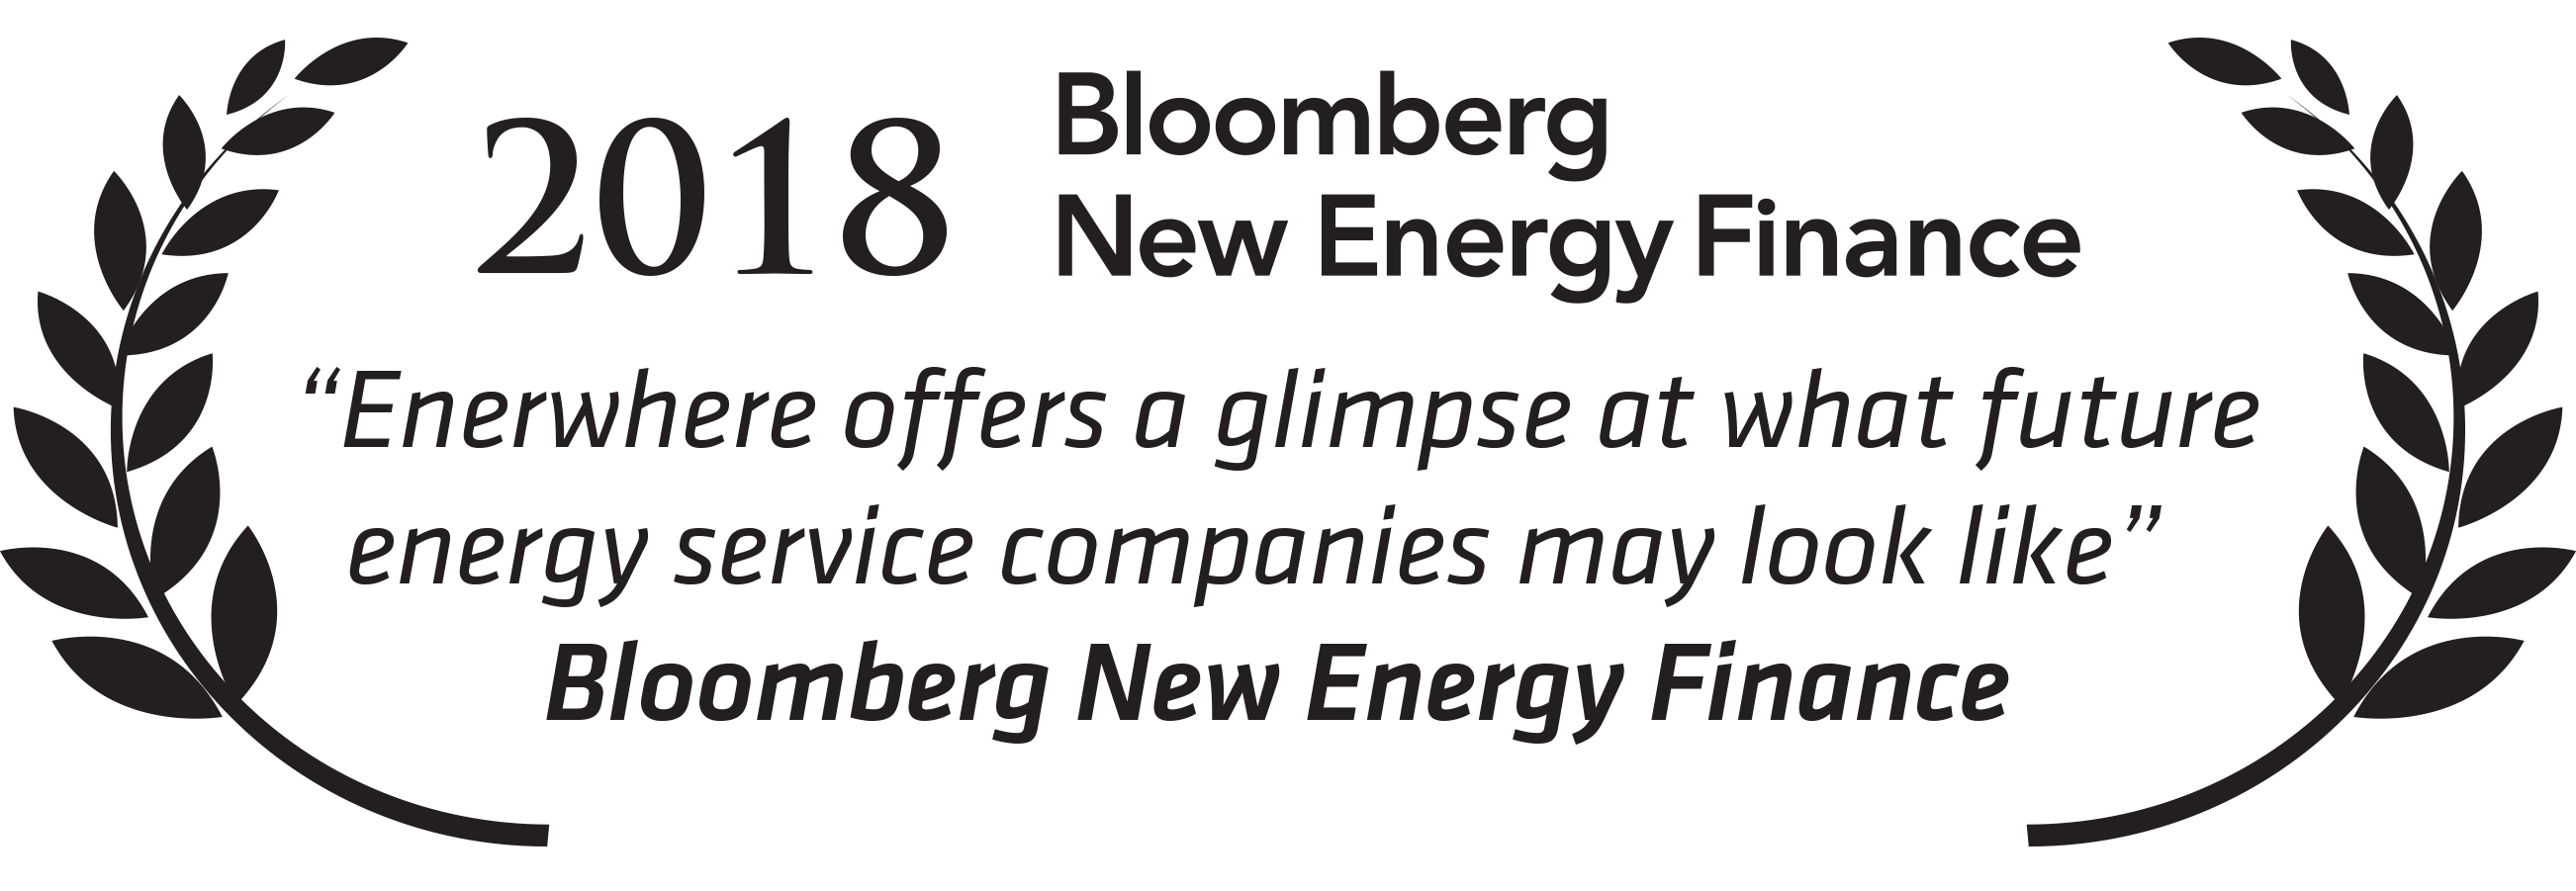 2018 BNEF Best Startup of the Year Enerwhere